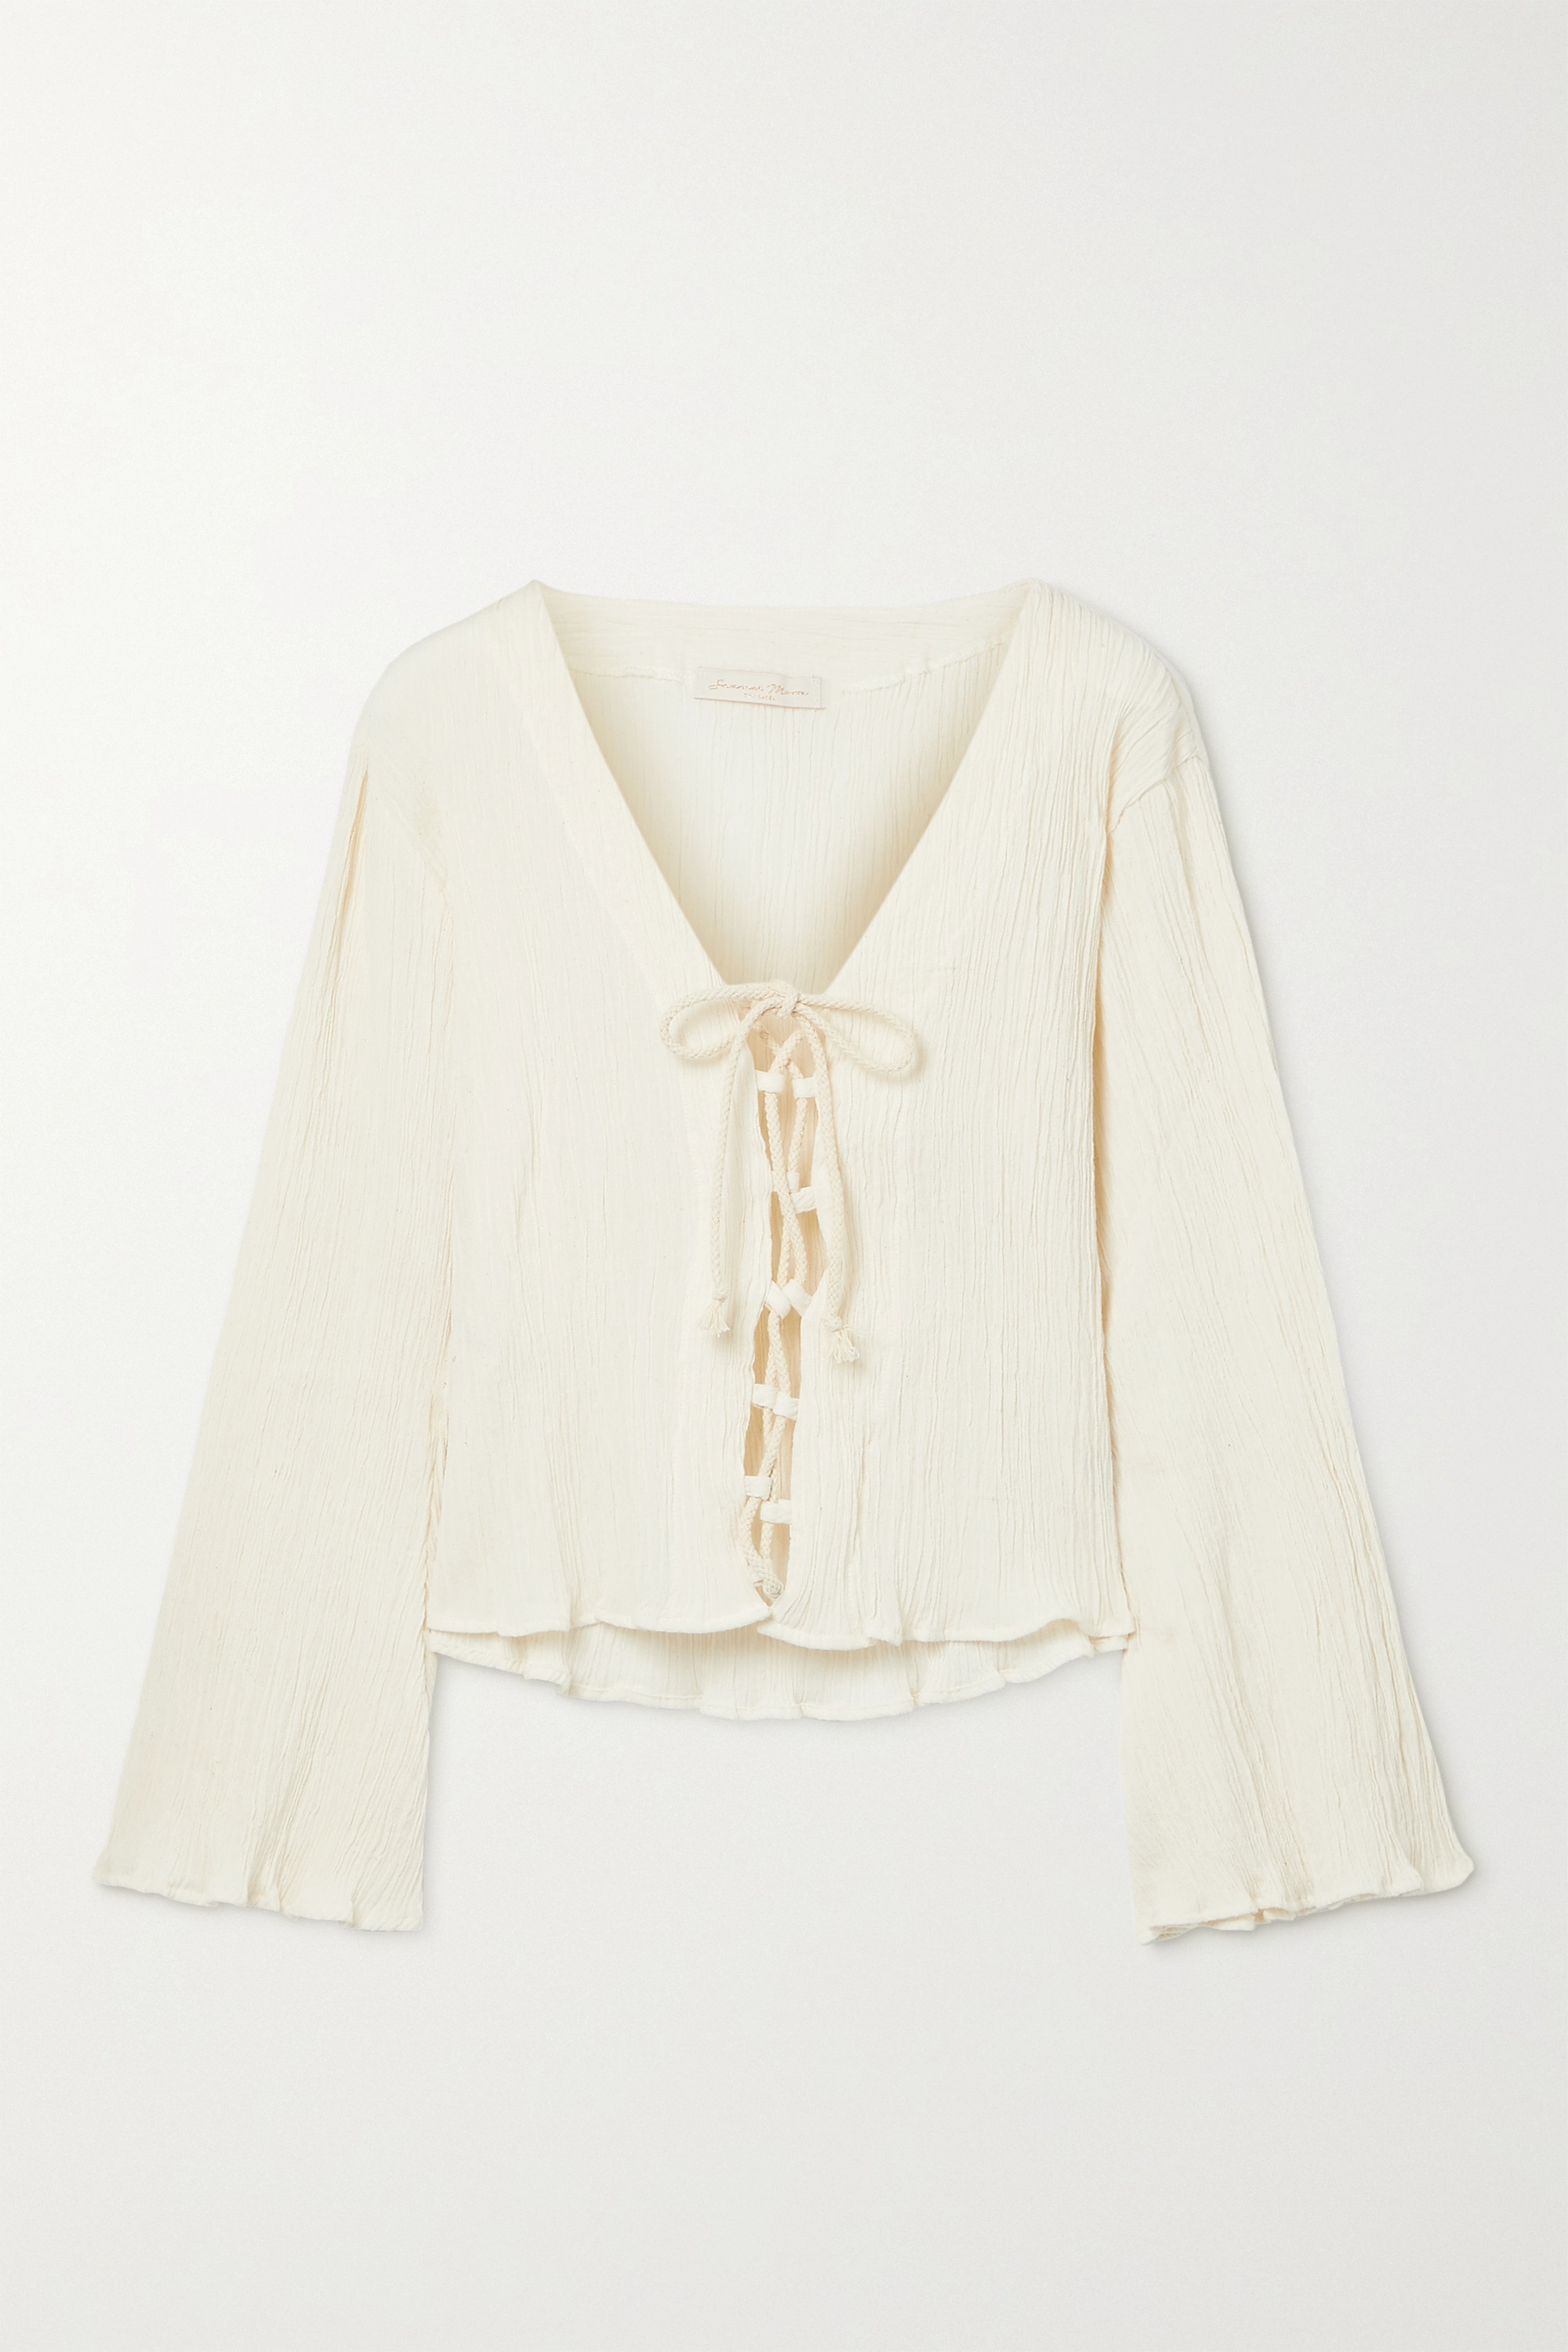 Savannah Morrow The Label + NET SUSTAIN Amey lace-up crinkled organic cotton-gauze top